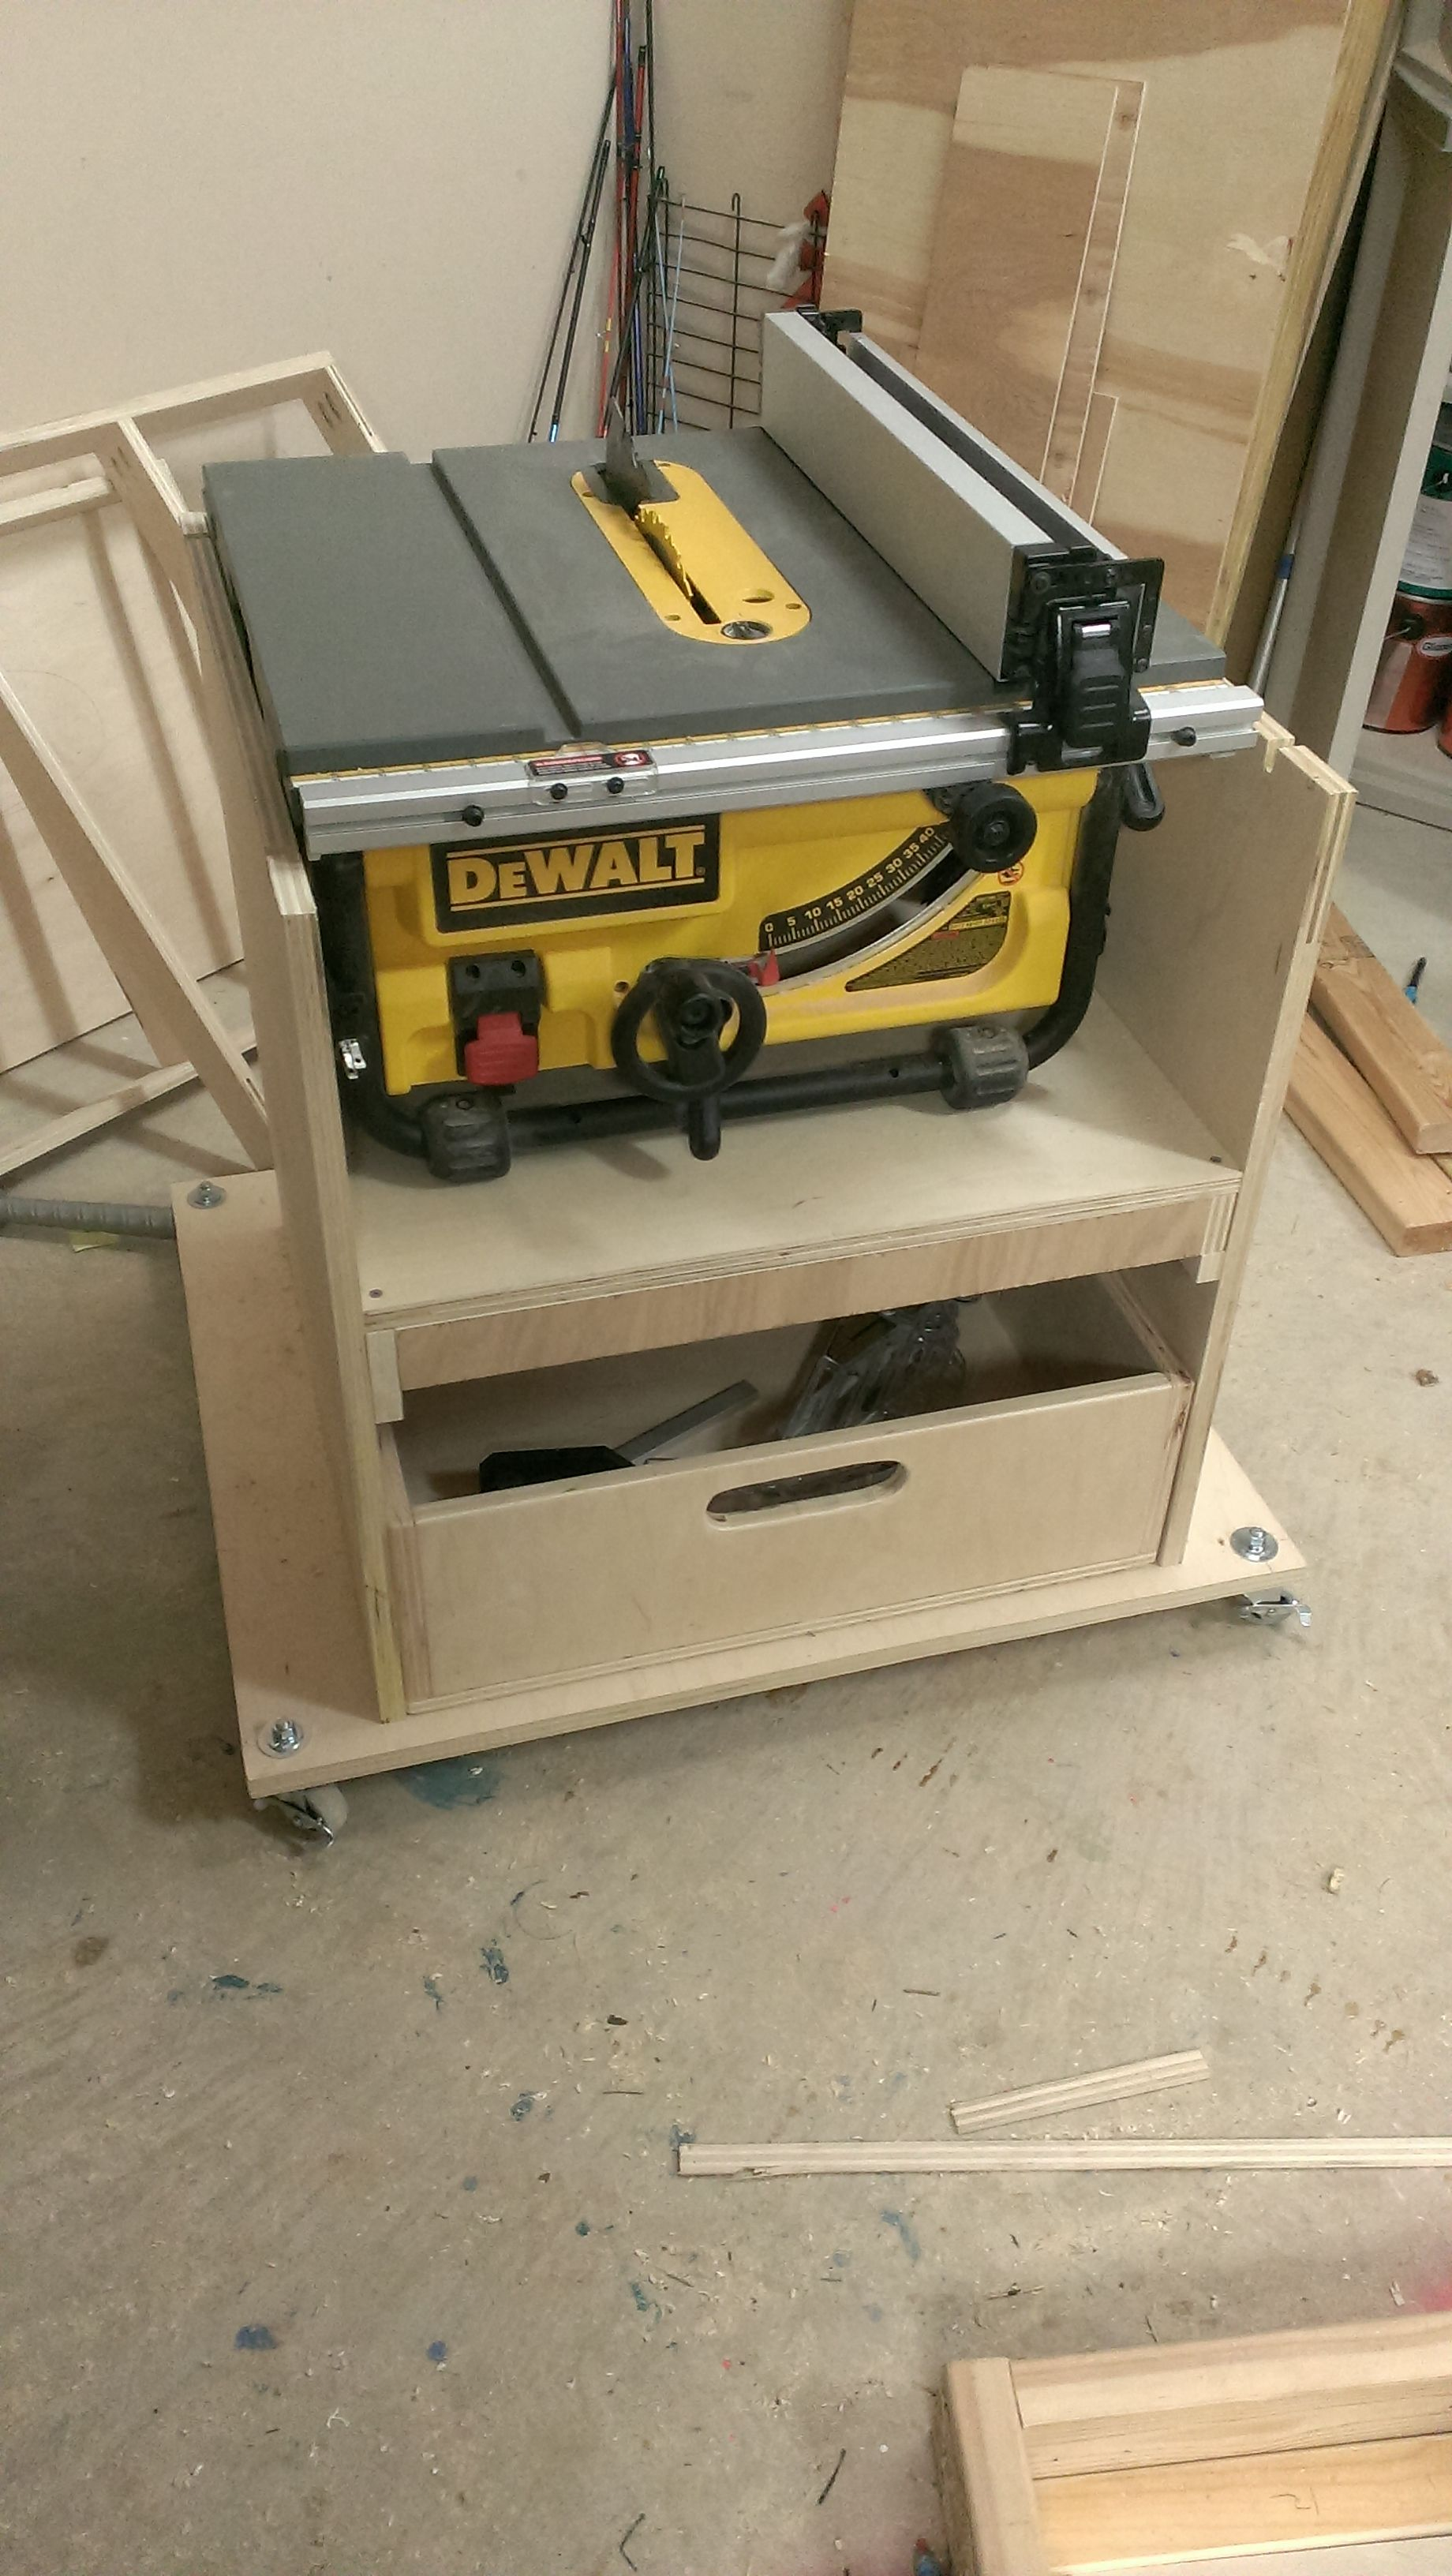 Mobile stand for my new table saw2014032320.28.45.jpg